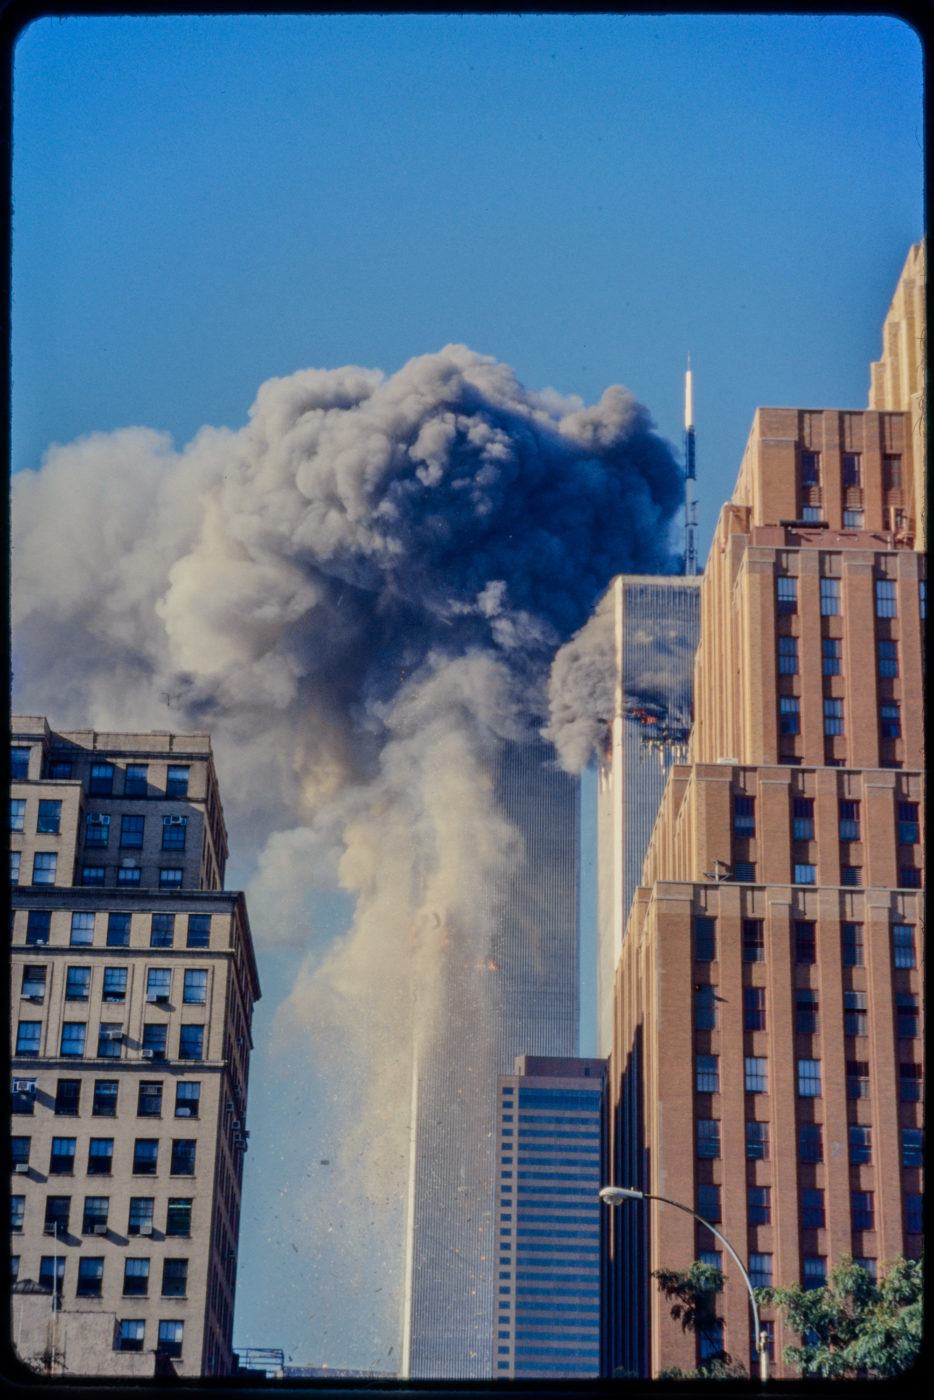 Tower 2 Getting hit by Plane as Tower 1 Burns.jpg